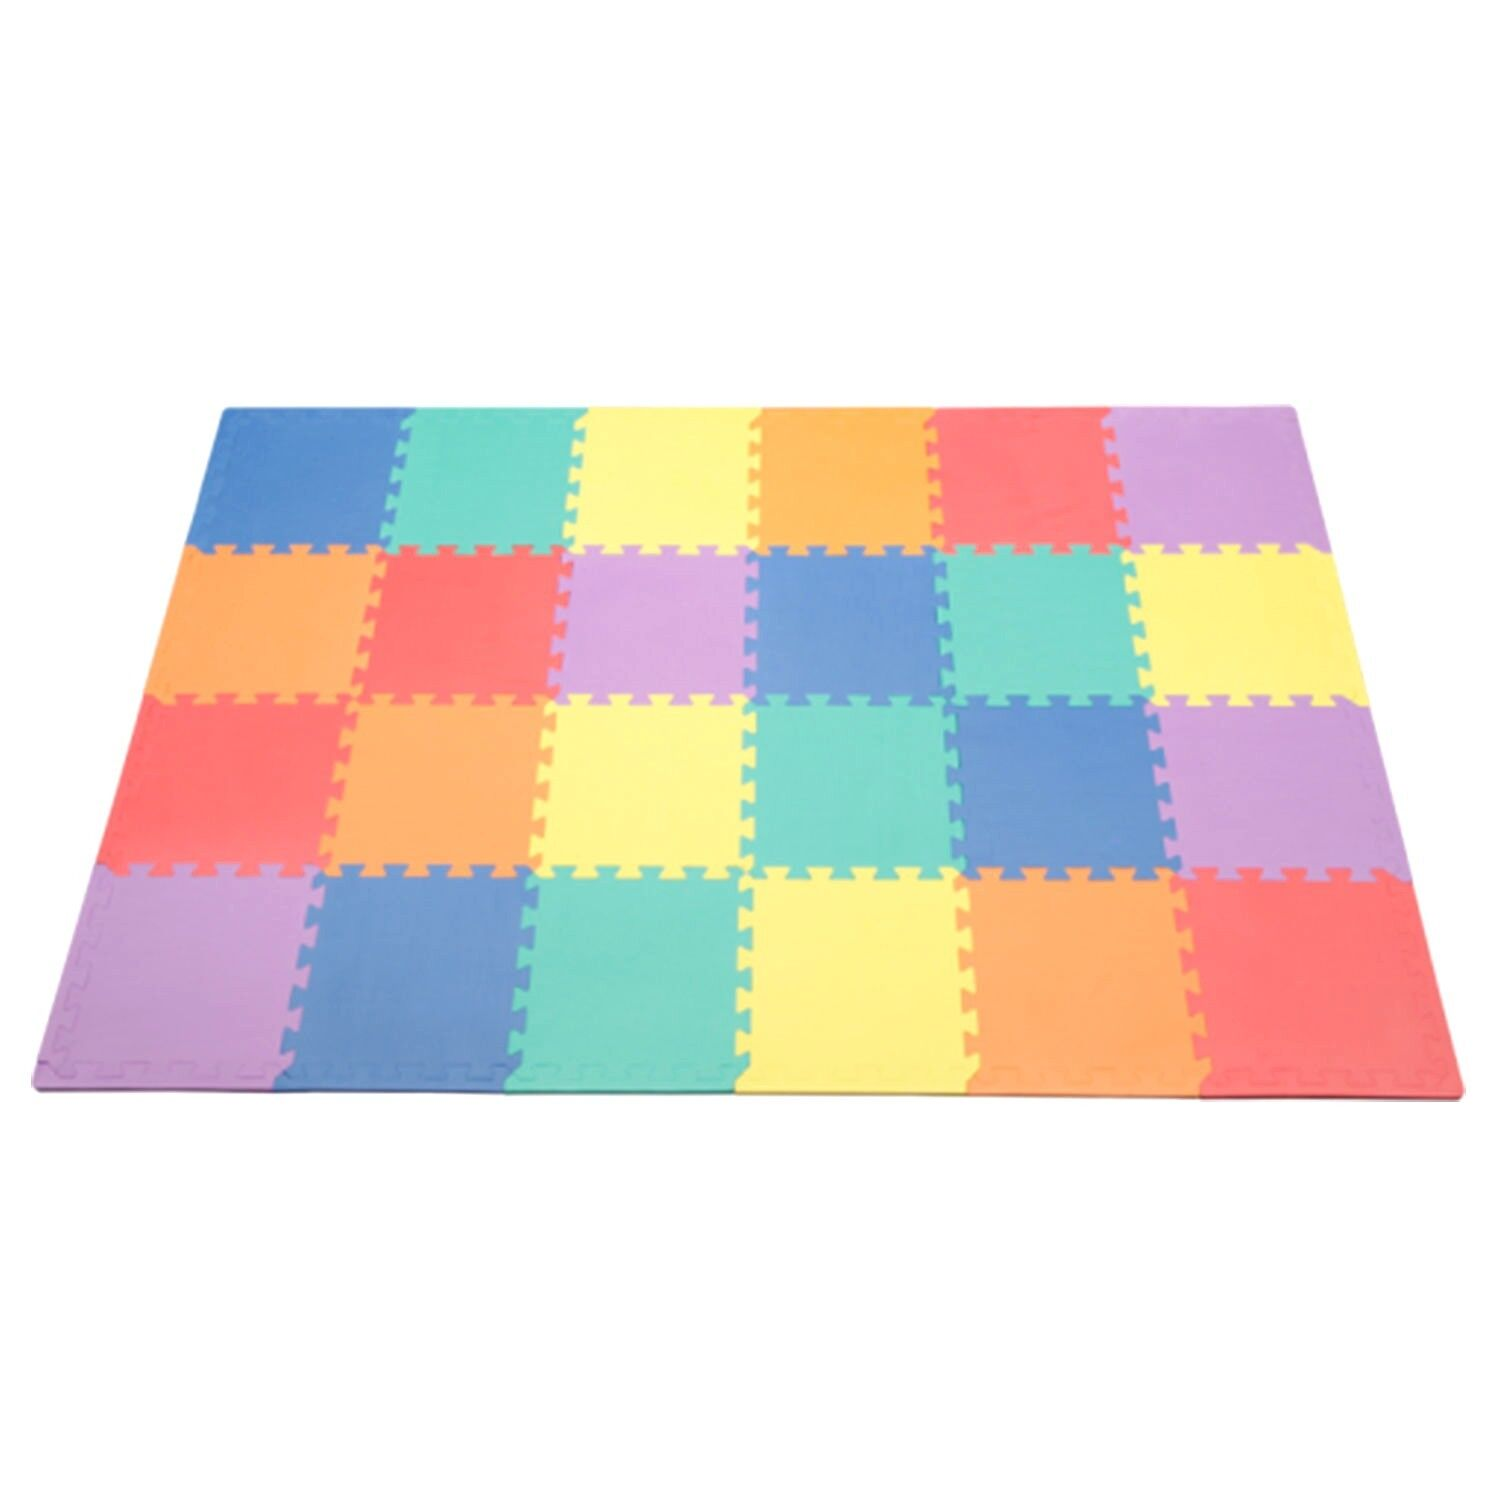 "Kids Foam Floor Play Mat Puzzle 24pcs 12"" Tile Toddler Baby"